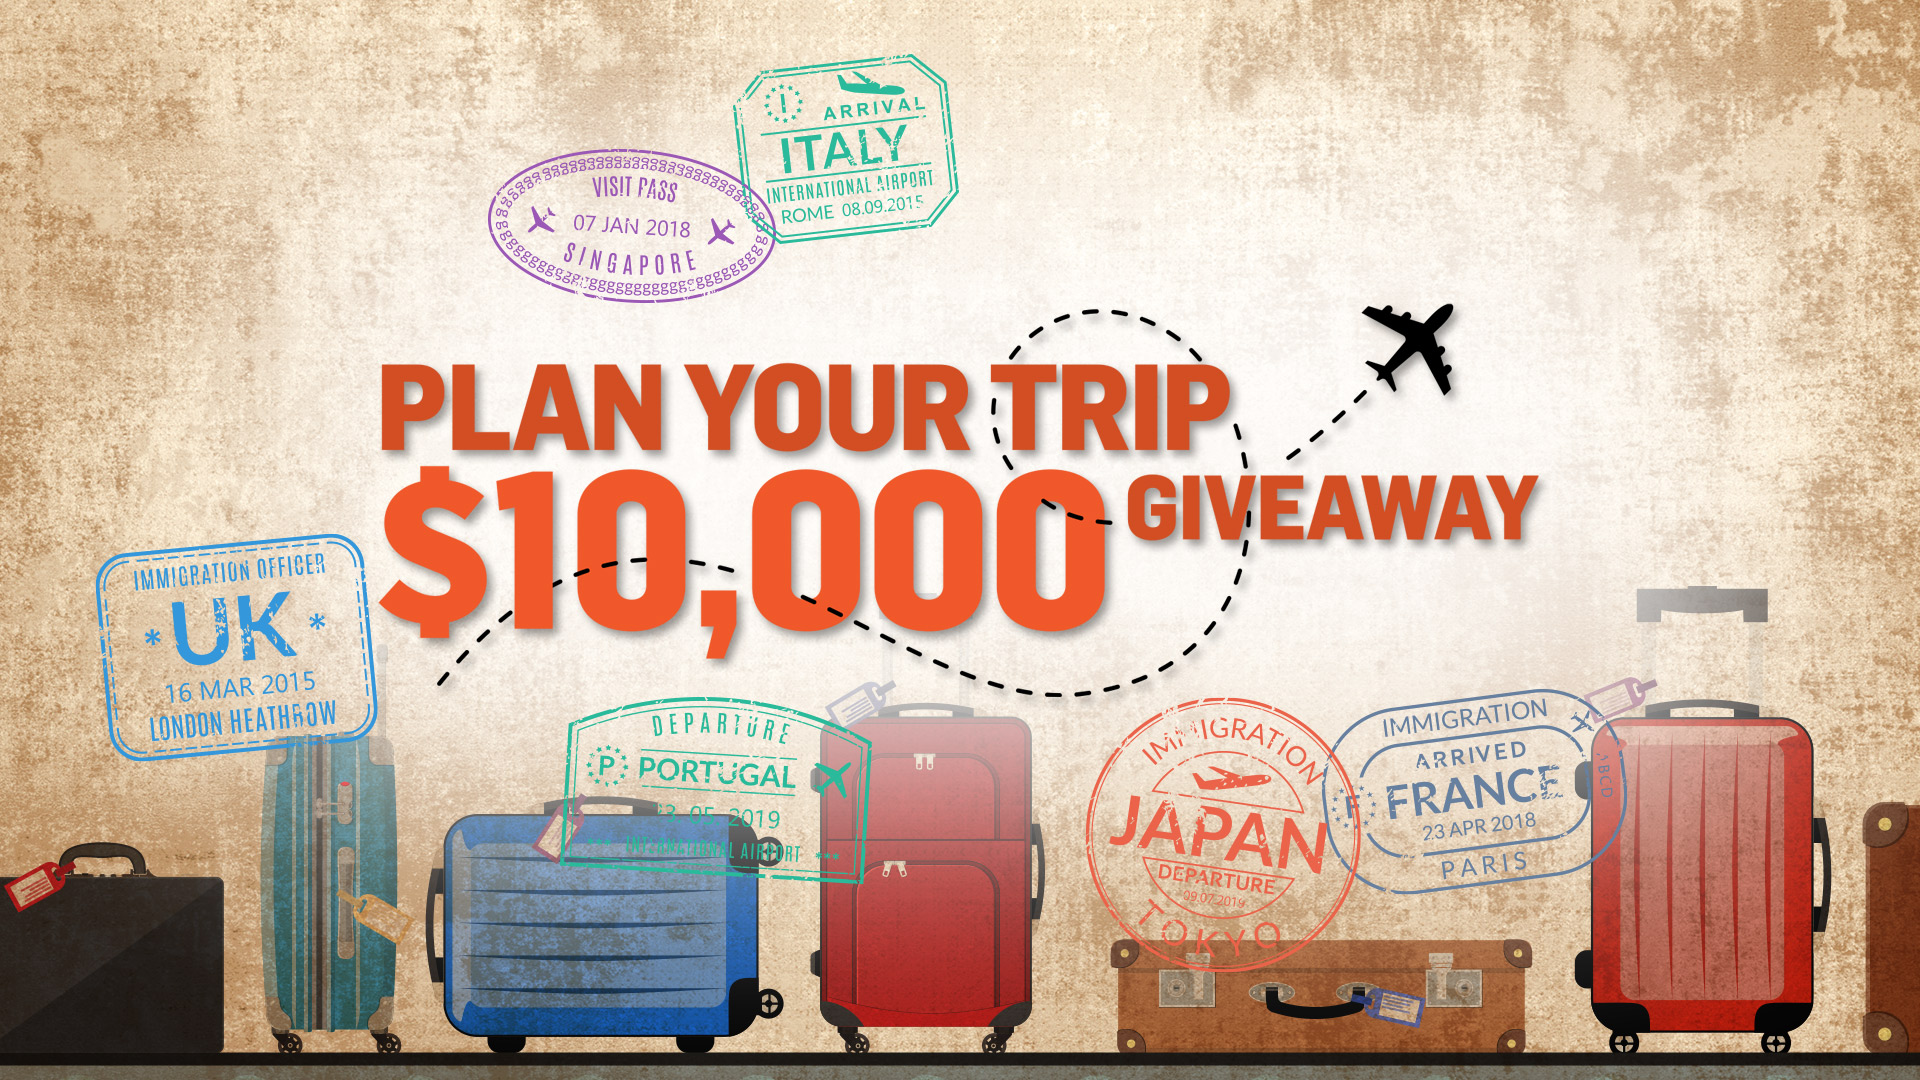 PLAN YOUR TRIP $10,000 GIVEAWAY